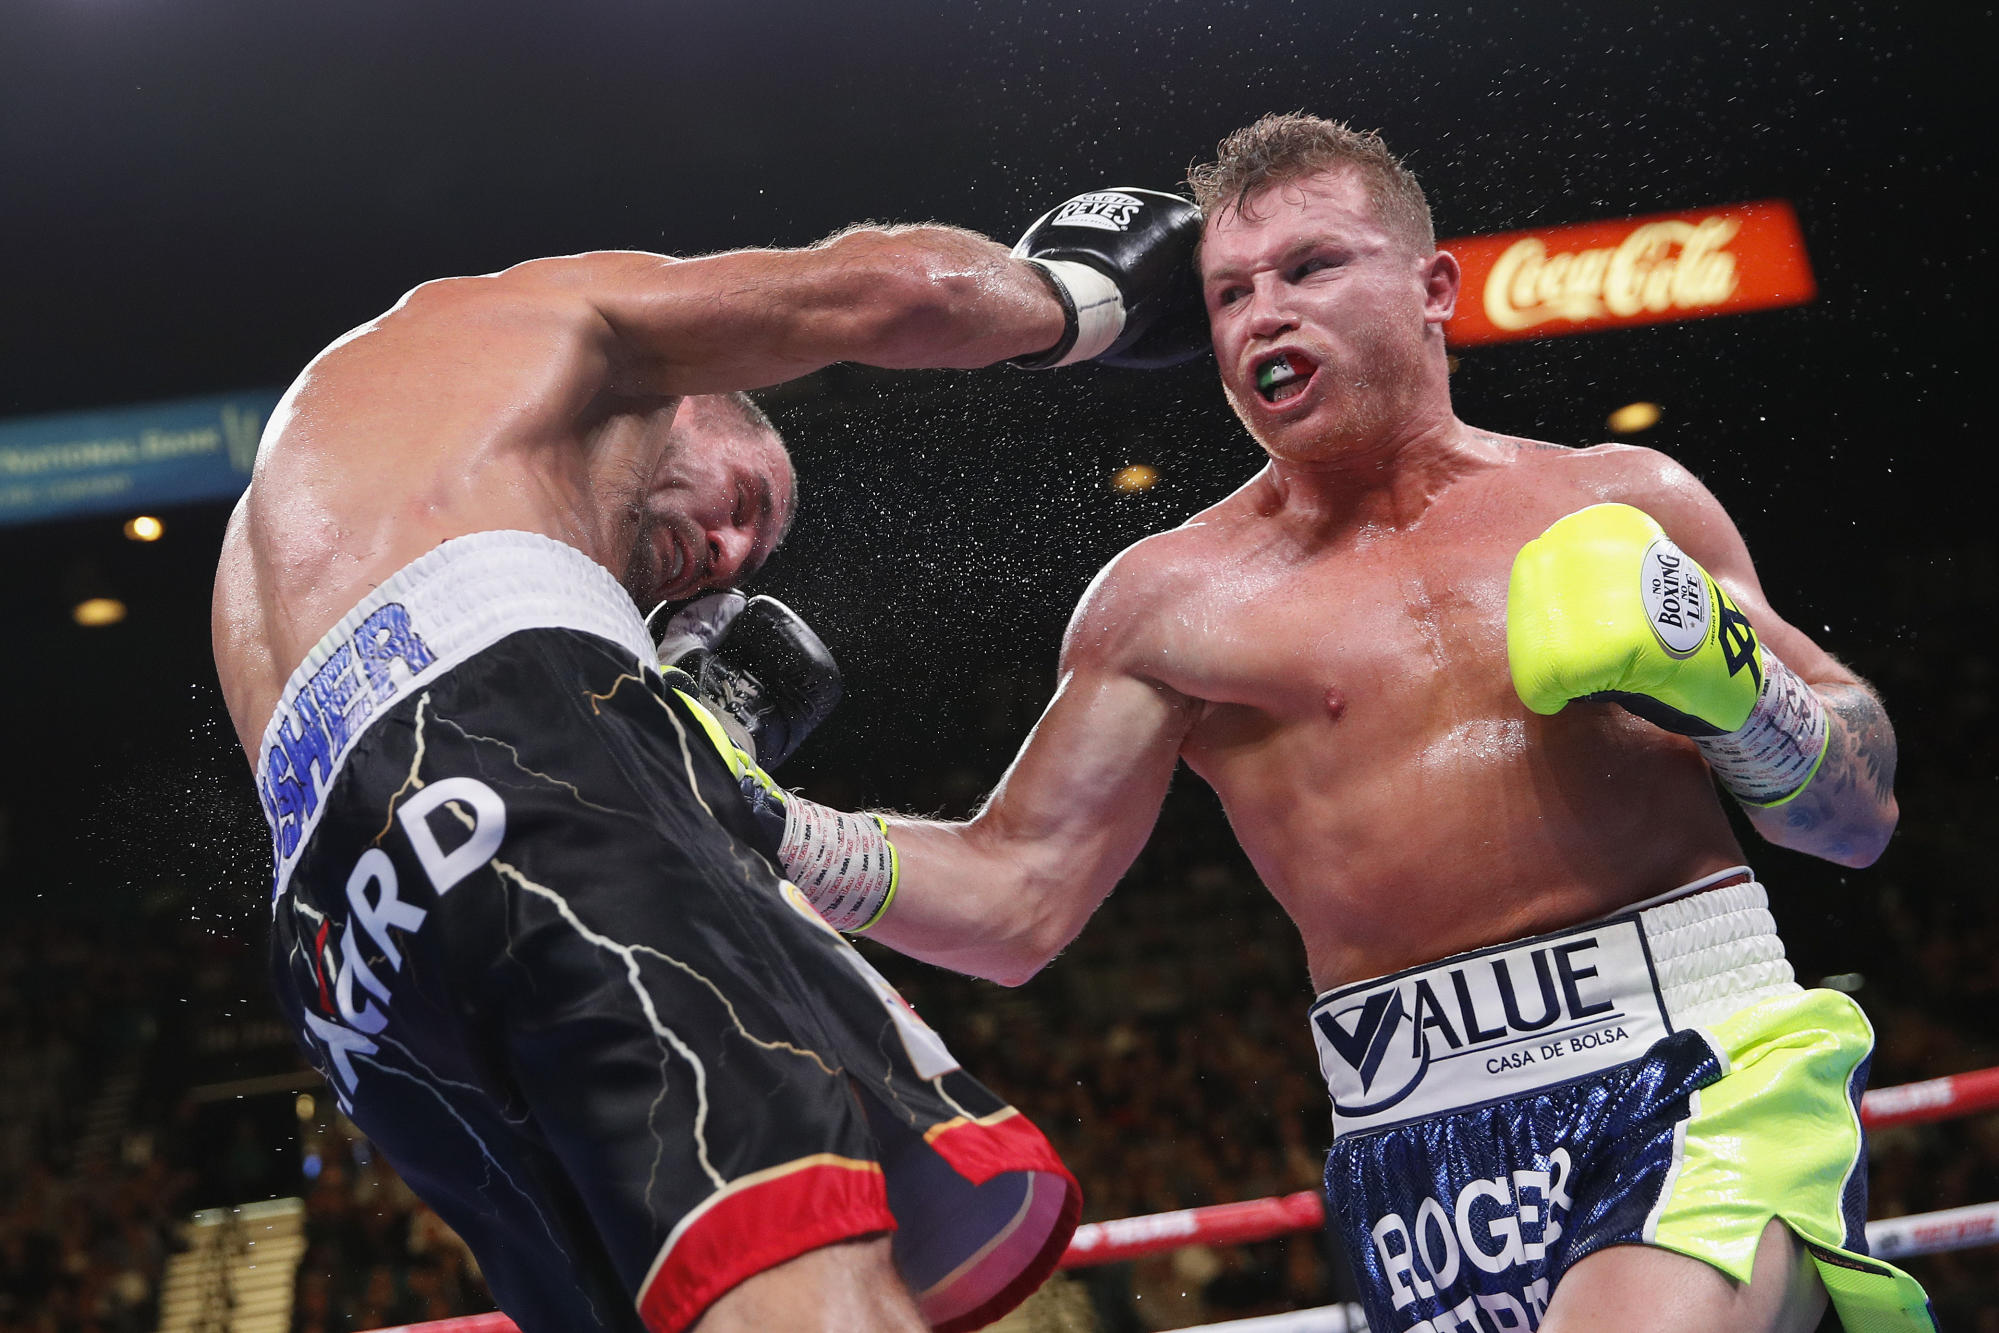 Mgm betting odds boxing between canelo sbobet handicap betting